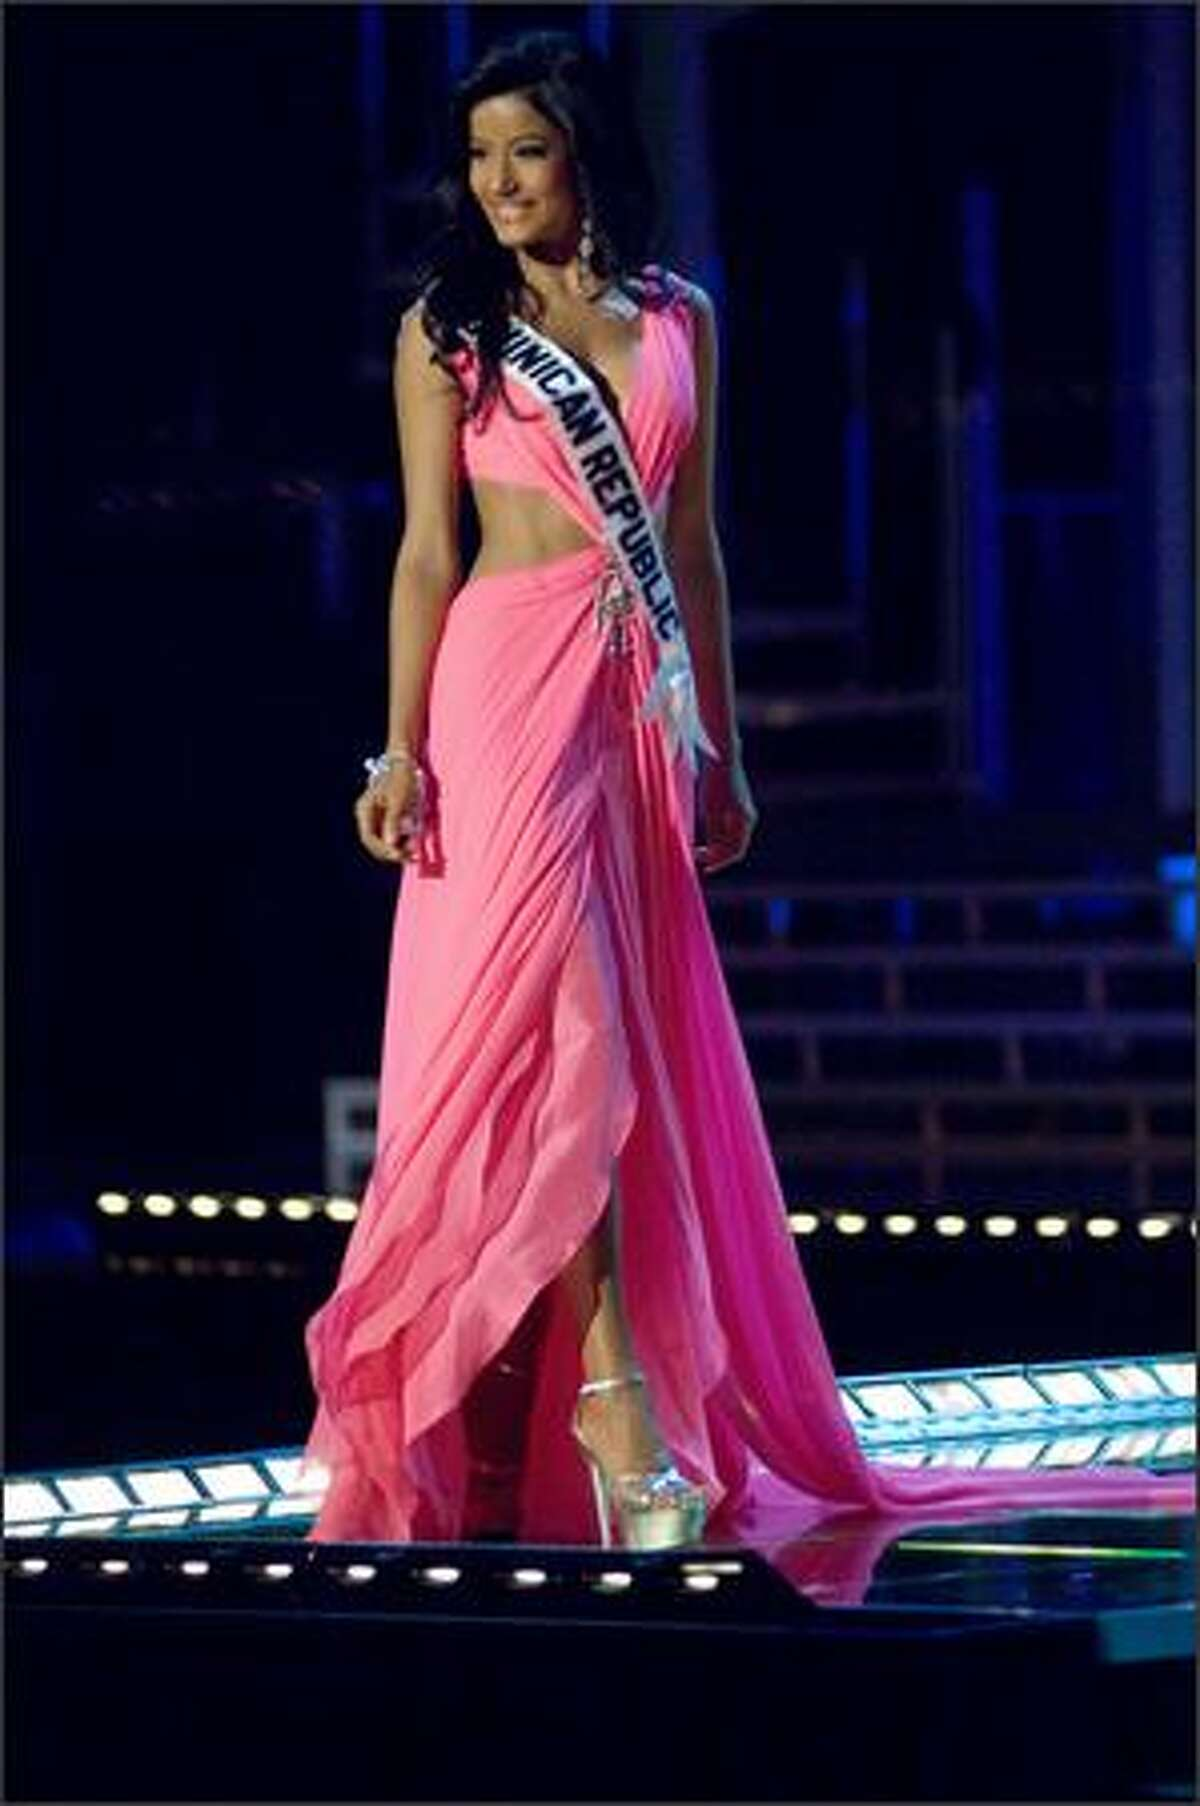 Massiel Taveras, Miss Dominican Republic 2007, competes in an evening gown of her choice during the 2007 Miss Universe Presentation Show at Auditorio Nacional in Mexico City on May 23. During the Presentation Show, each is judged by a preliminary panel of judges in individual interview, swimsuit and evening gown categories. The scores will be tallied and the top 15 contestants will be announced during the broadcast of the finals on May 28 (9 p.m. Pacific, tape-delayed).